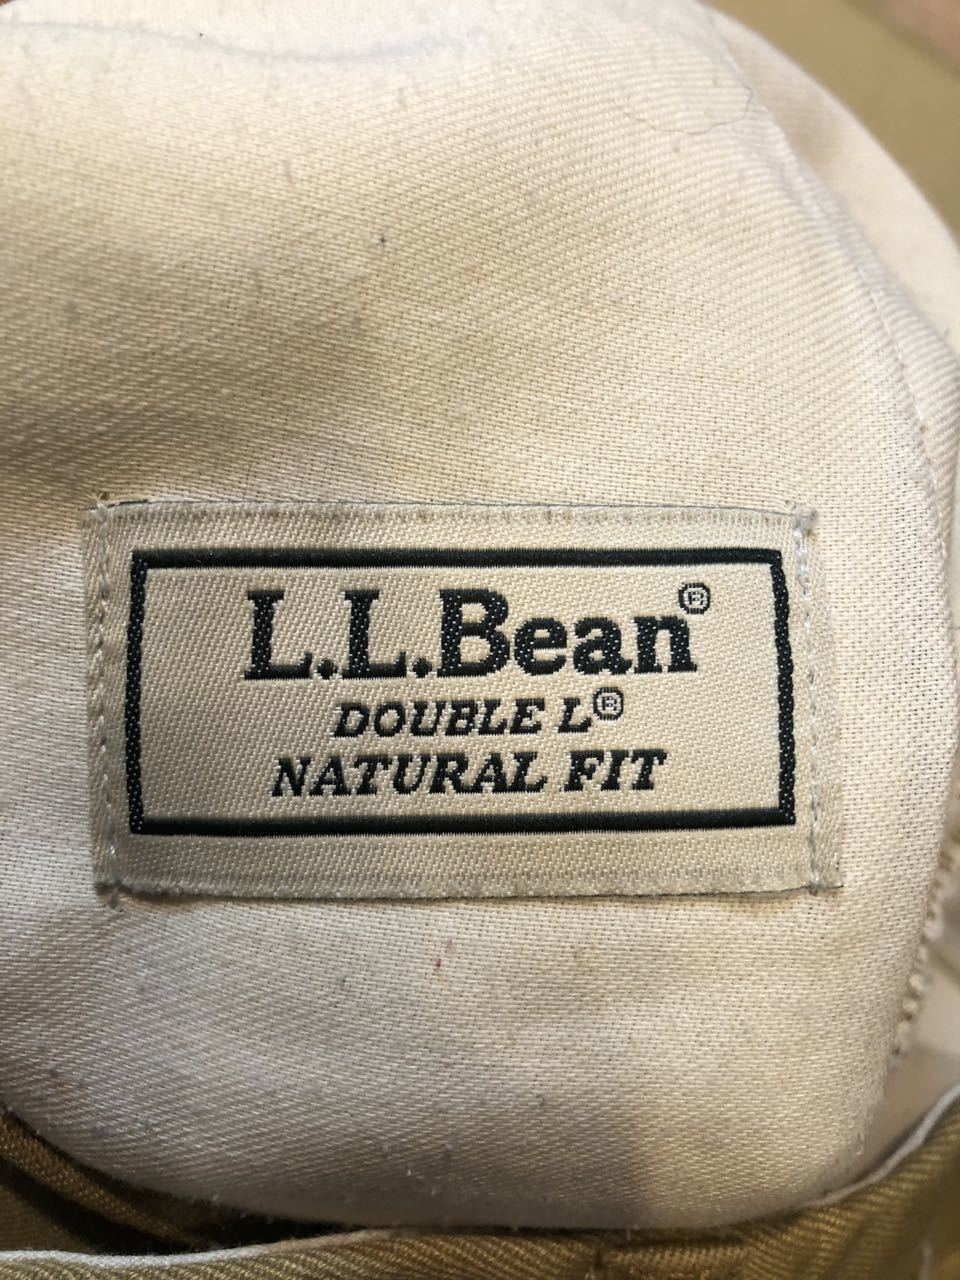 6月23日(火)入荷!L.L bean chino trouthers ! _c0144020_16382038.jpg